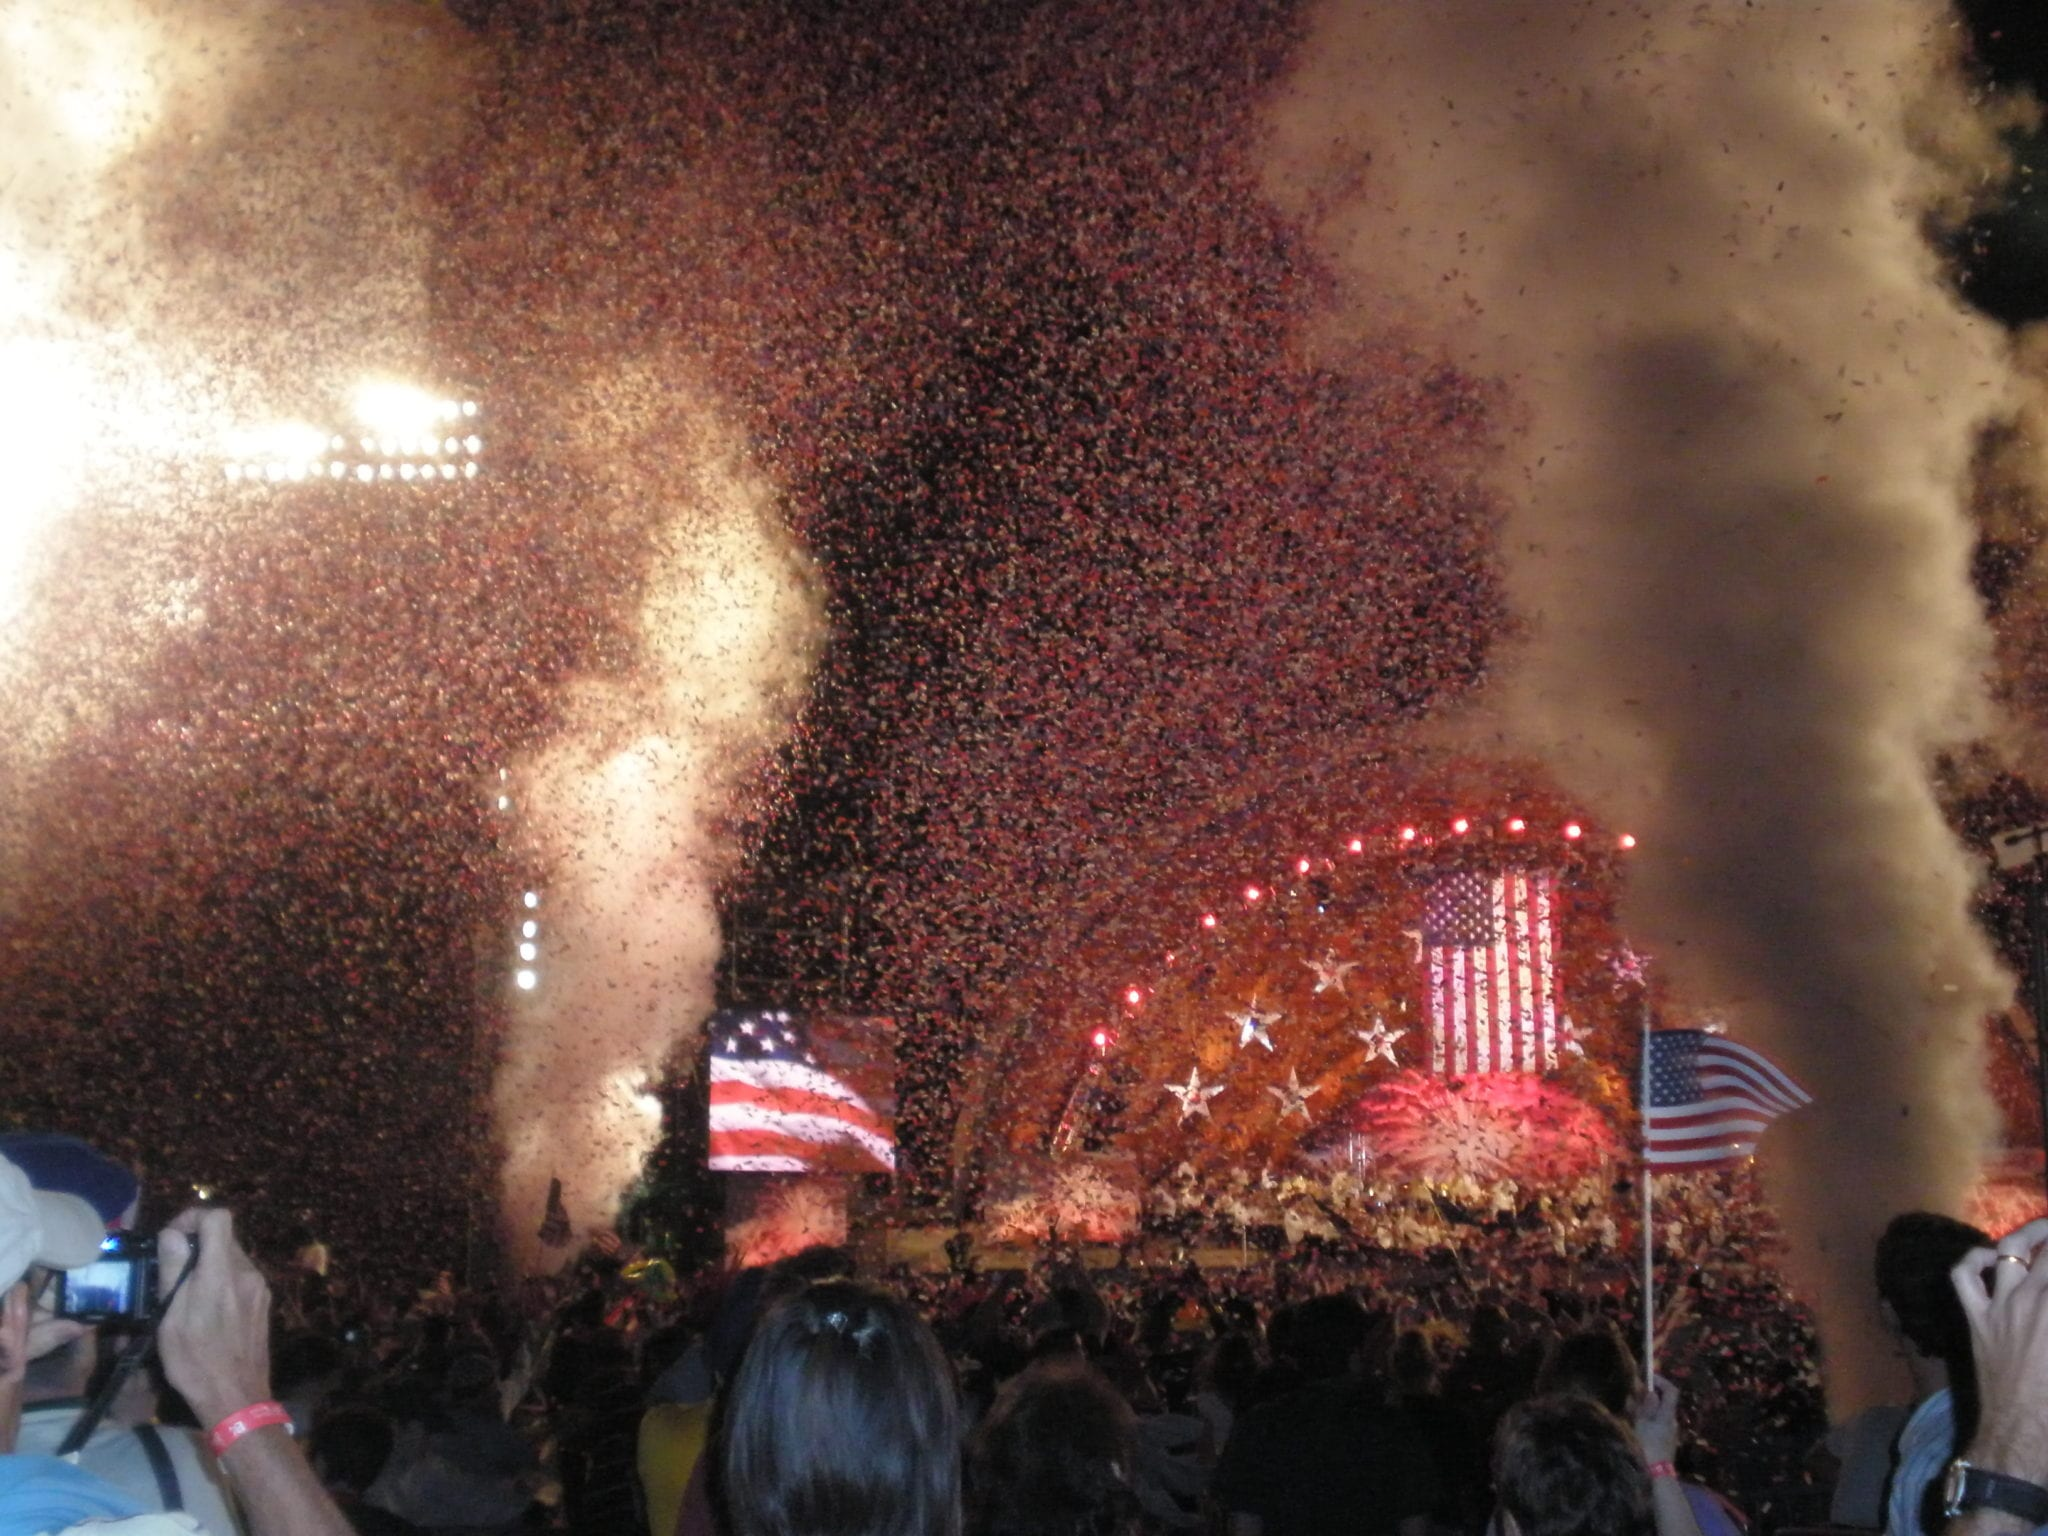 Free Concert At Hatch Shell July 30th >> July 4th Boston Guide July 4th Boston Fireworks And Boston Pops